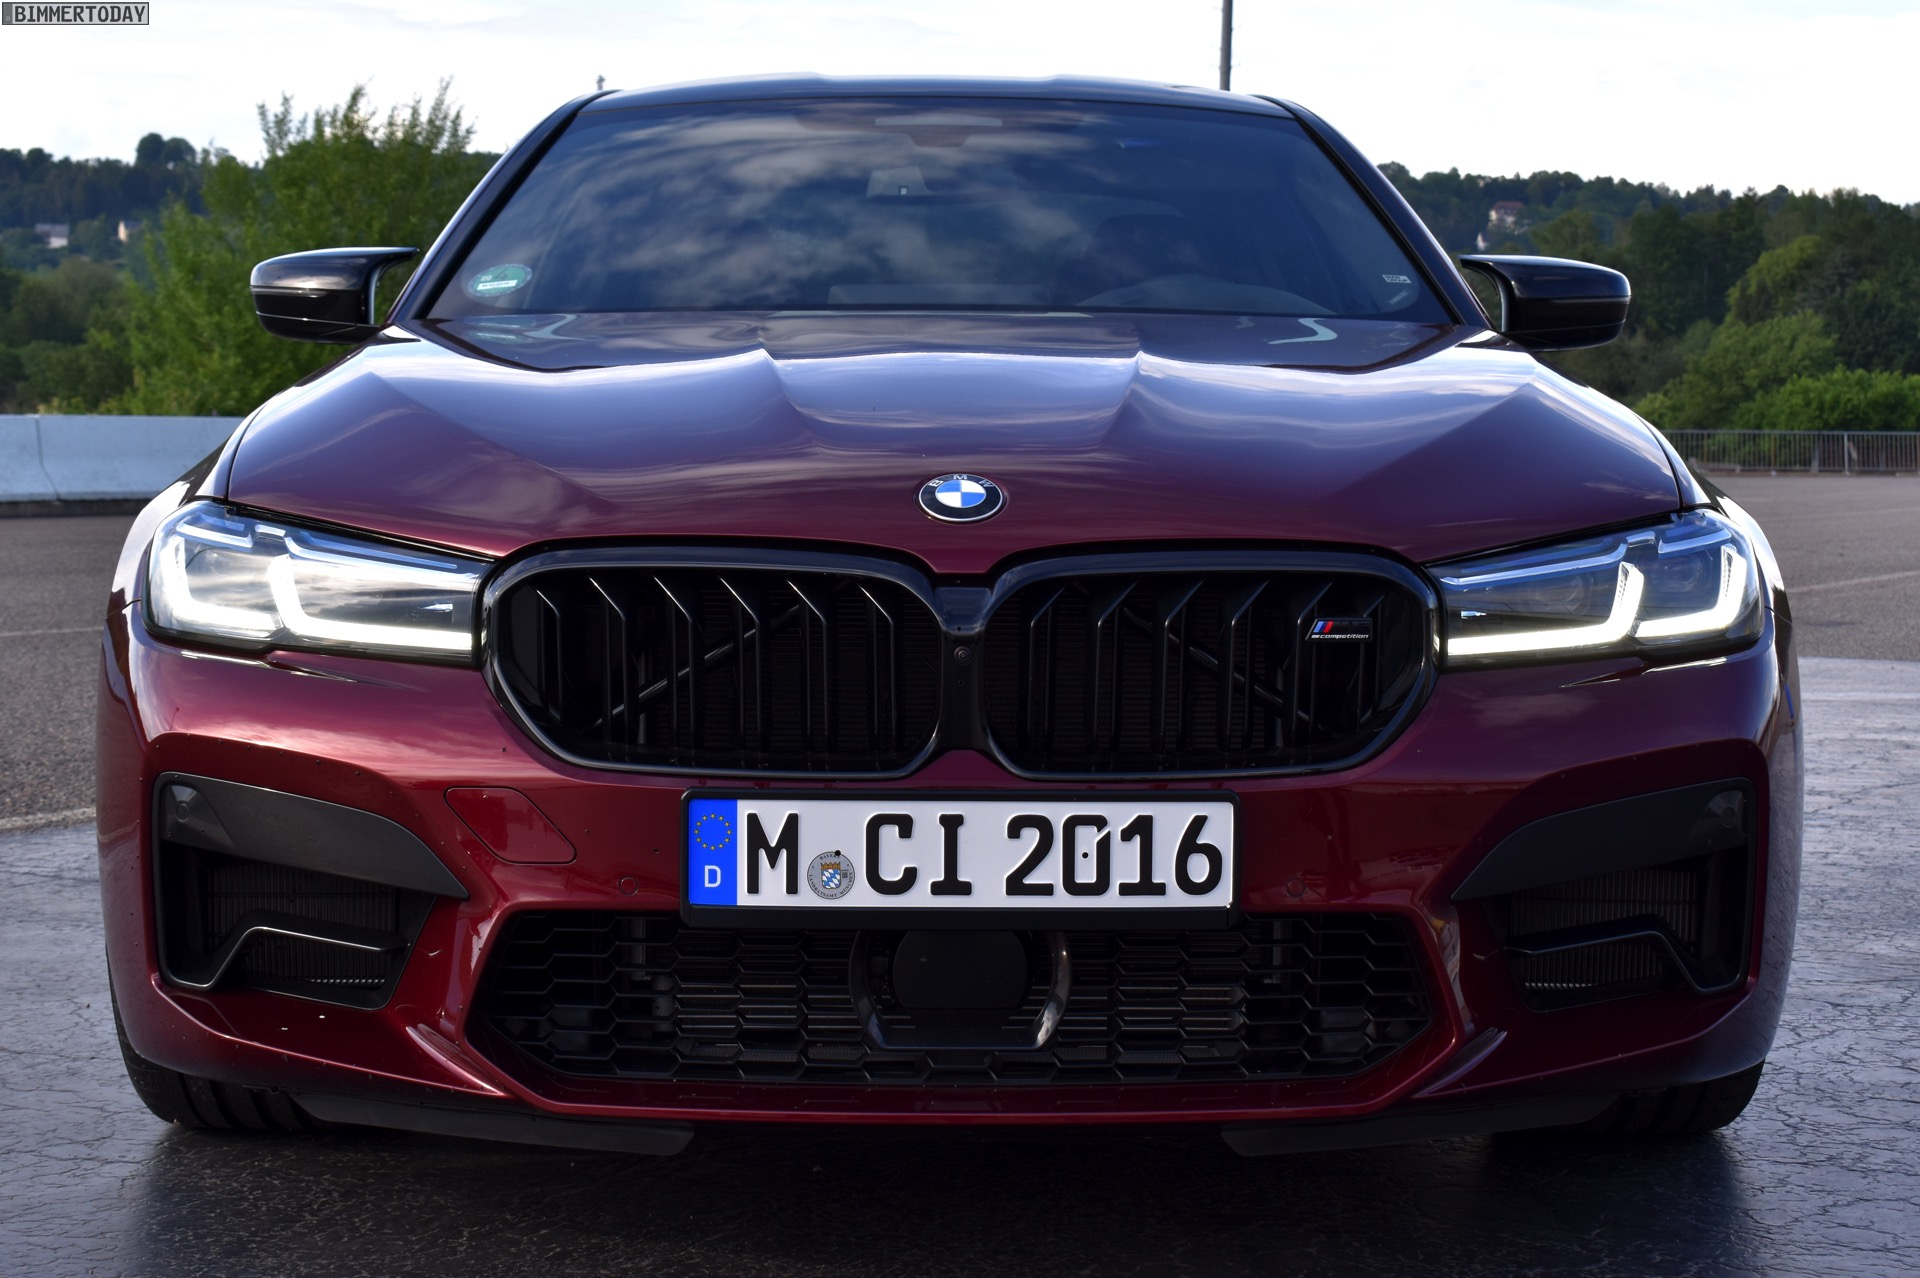 2021 Bmw M5 Facelift In Aventurine Red Real Life Photos